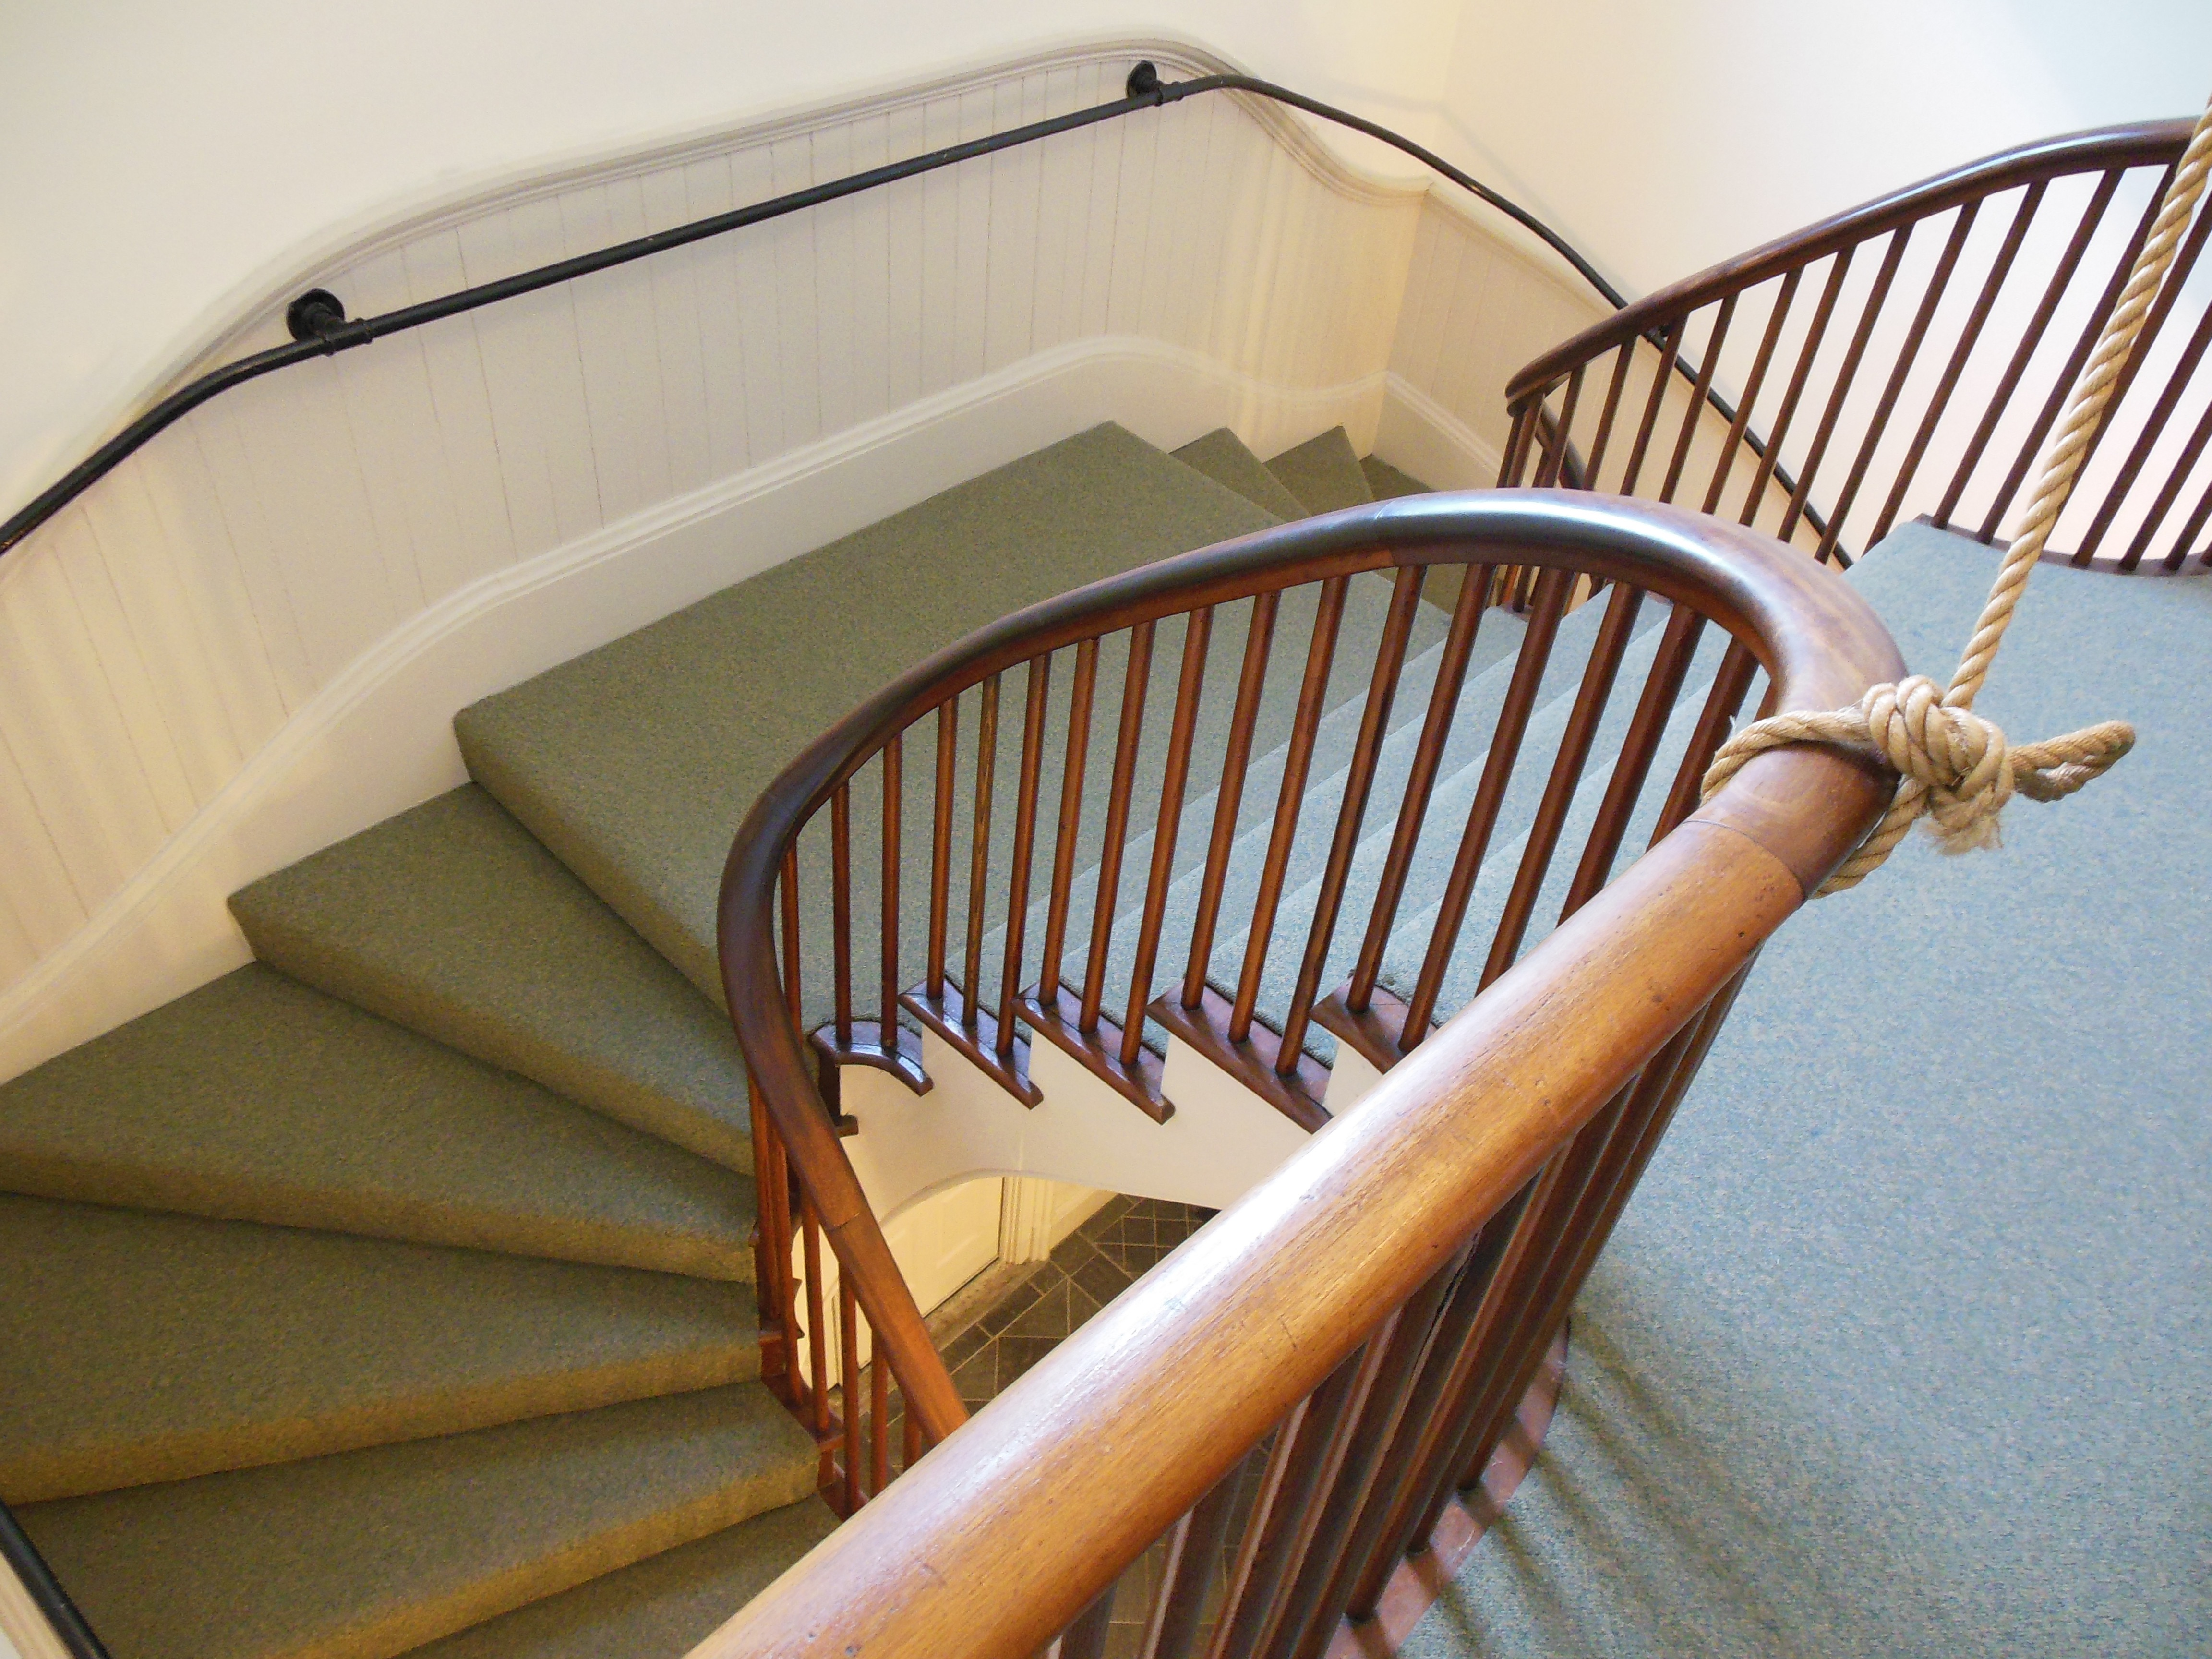 THE WINDING FRONT STAIRCASE TO THE UPSTAIRS COURTROOM